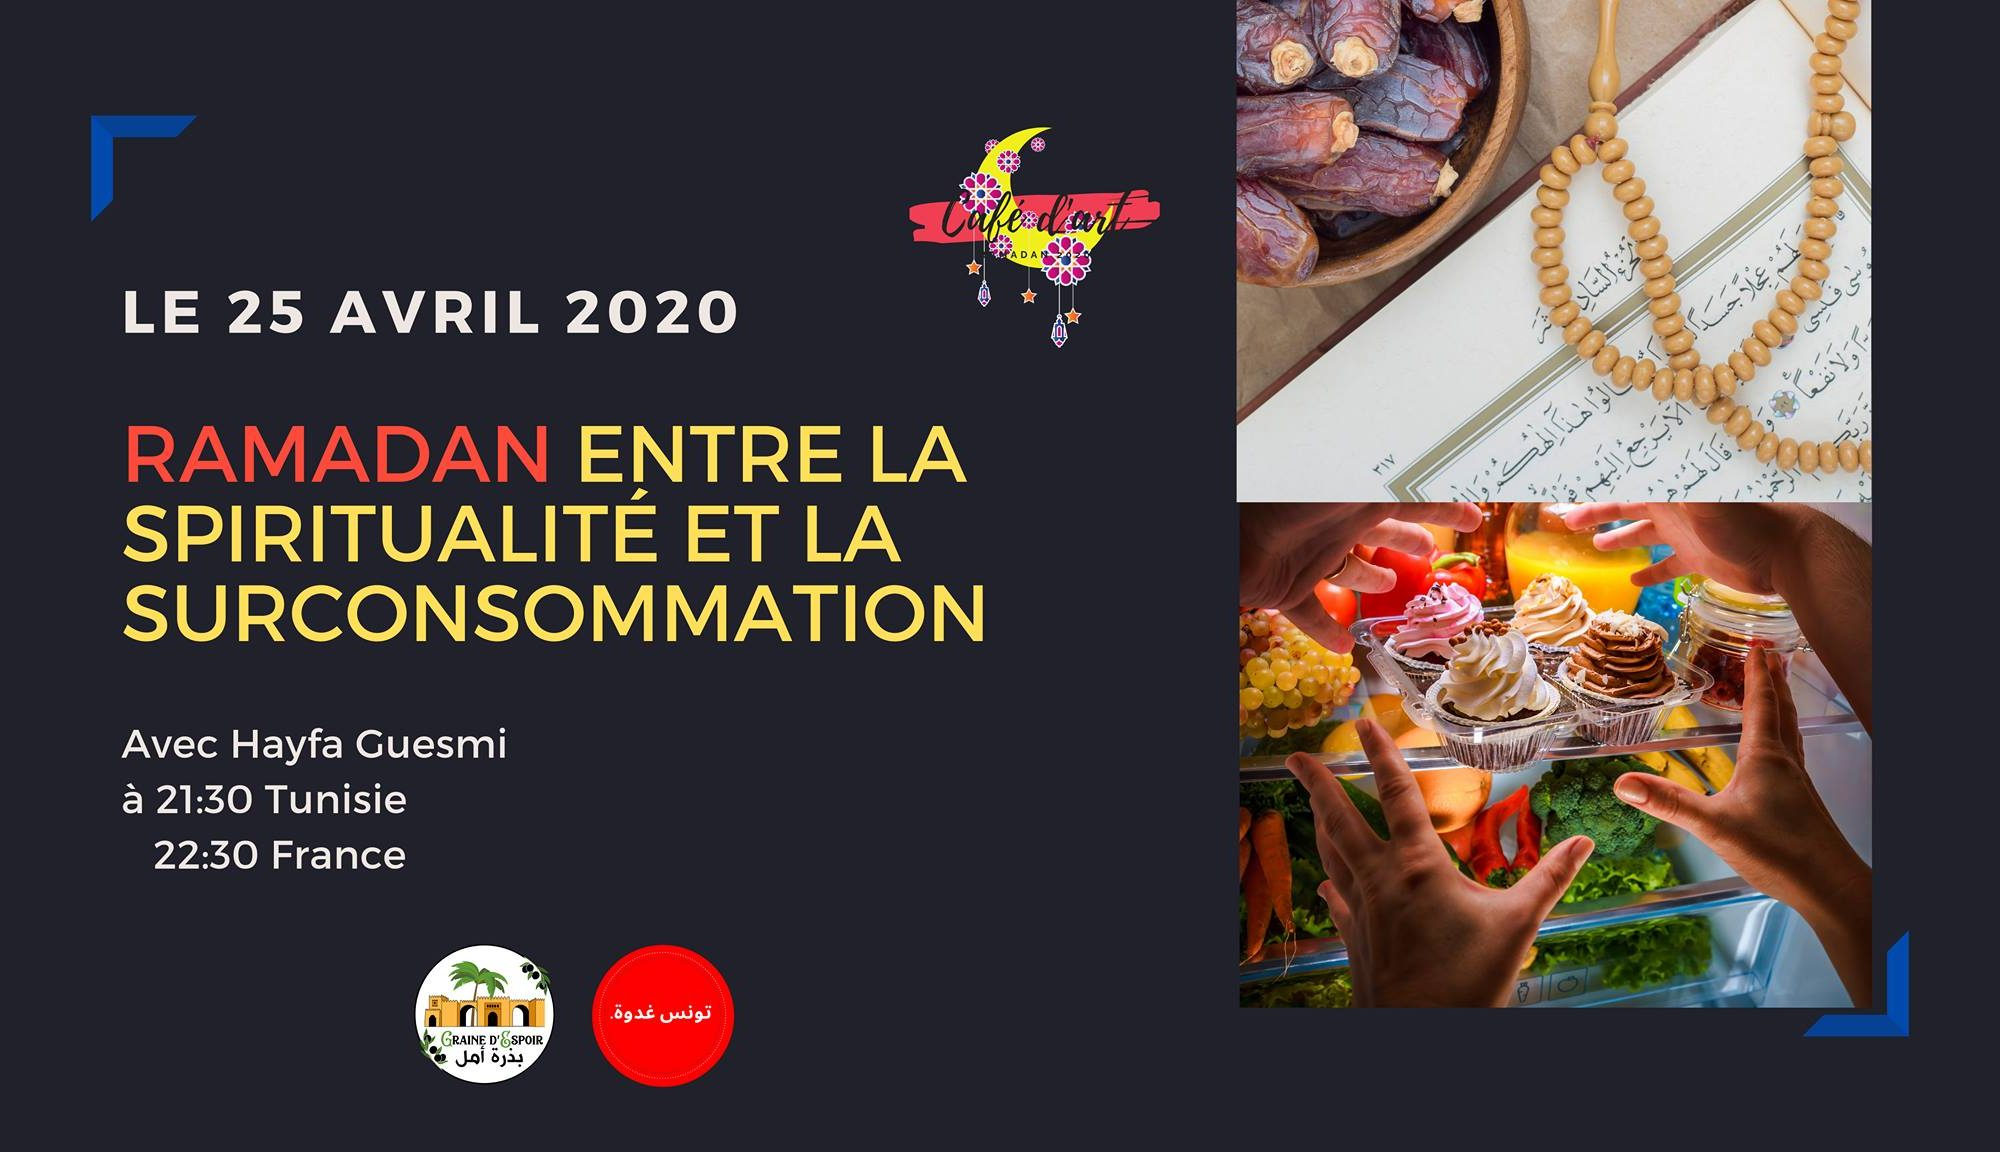 event 25 avril